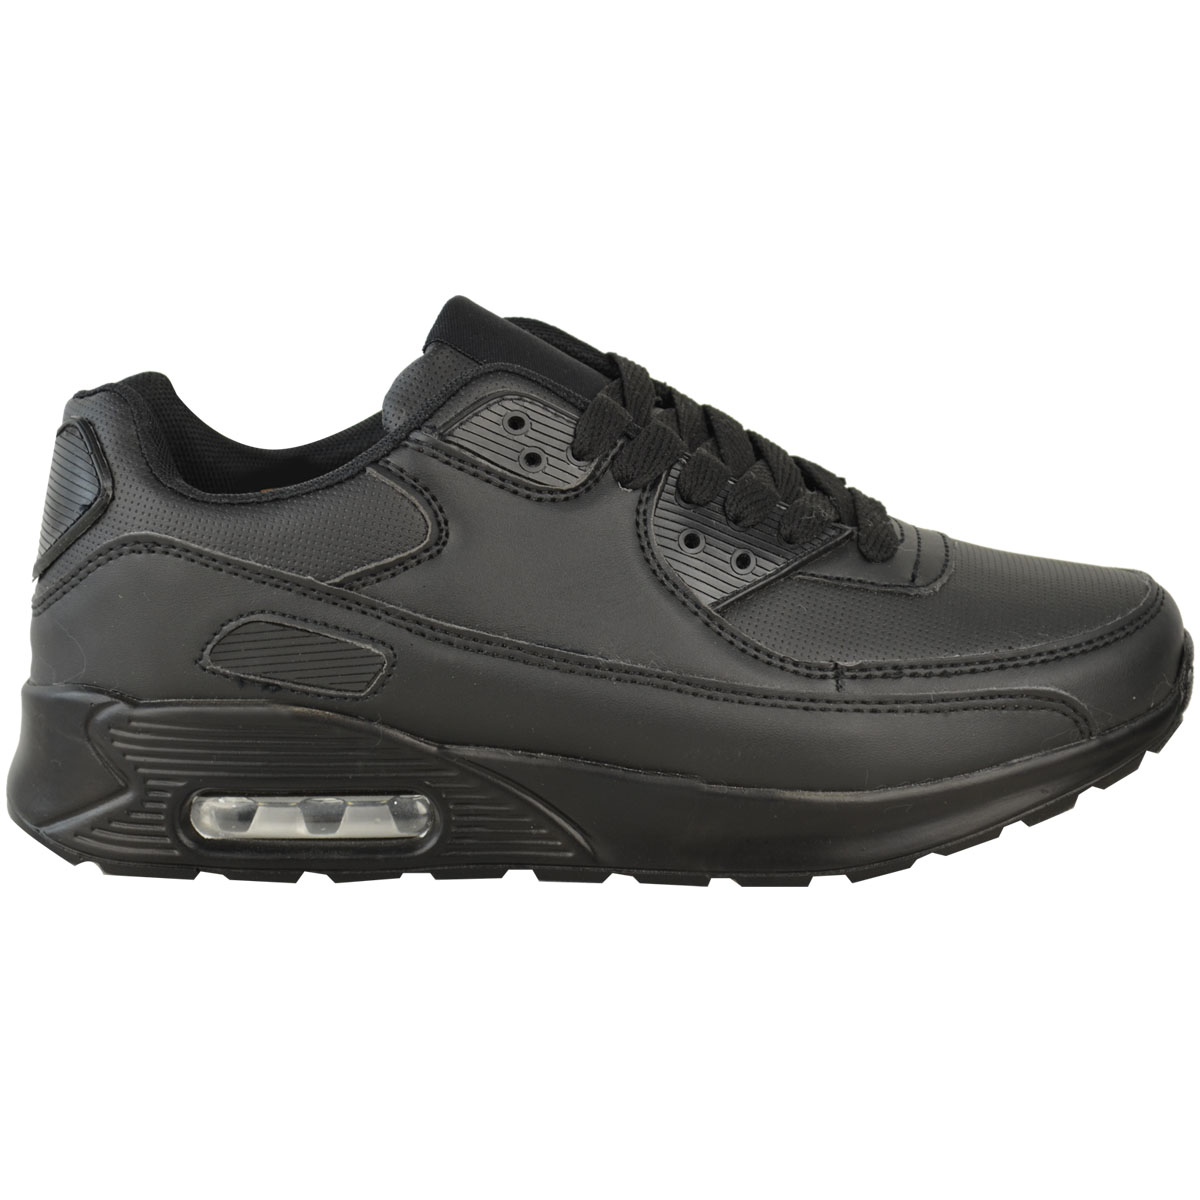 Mens Athletic Walking Shoes